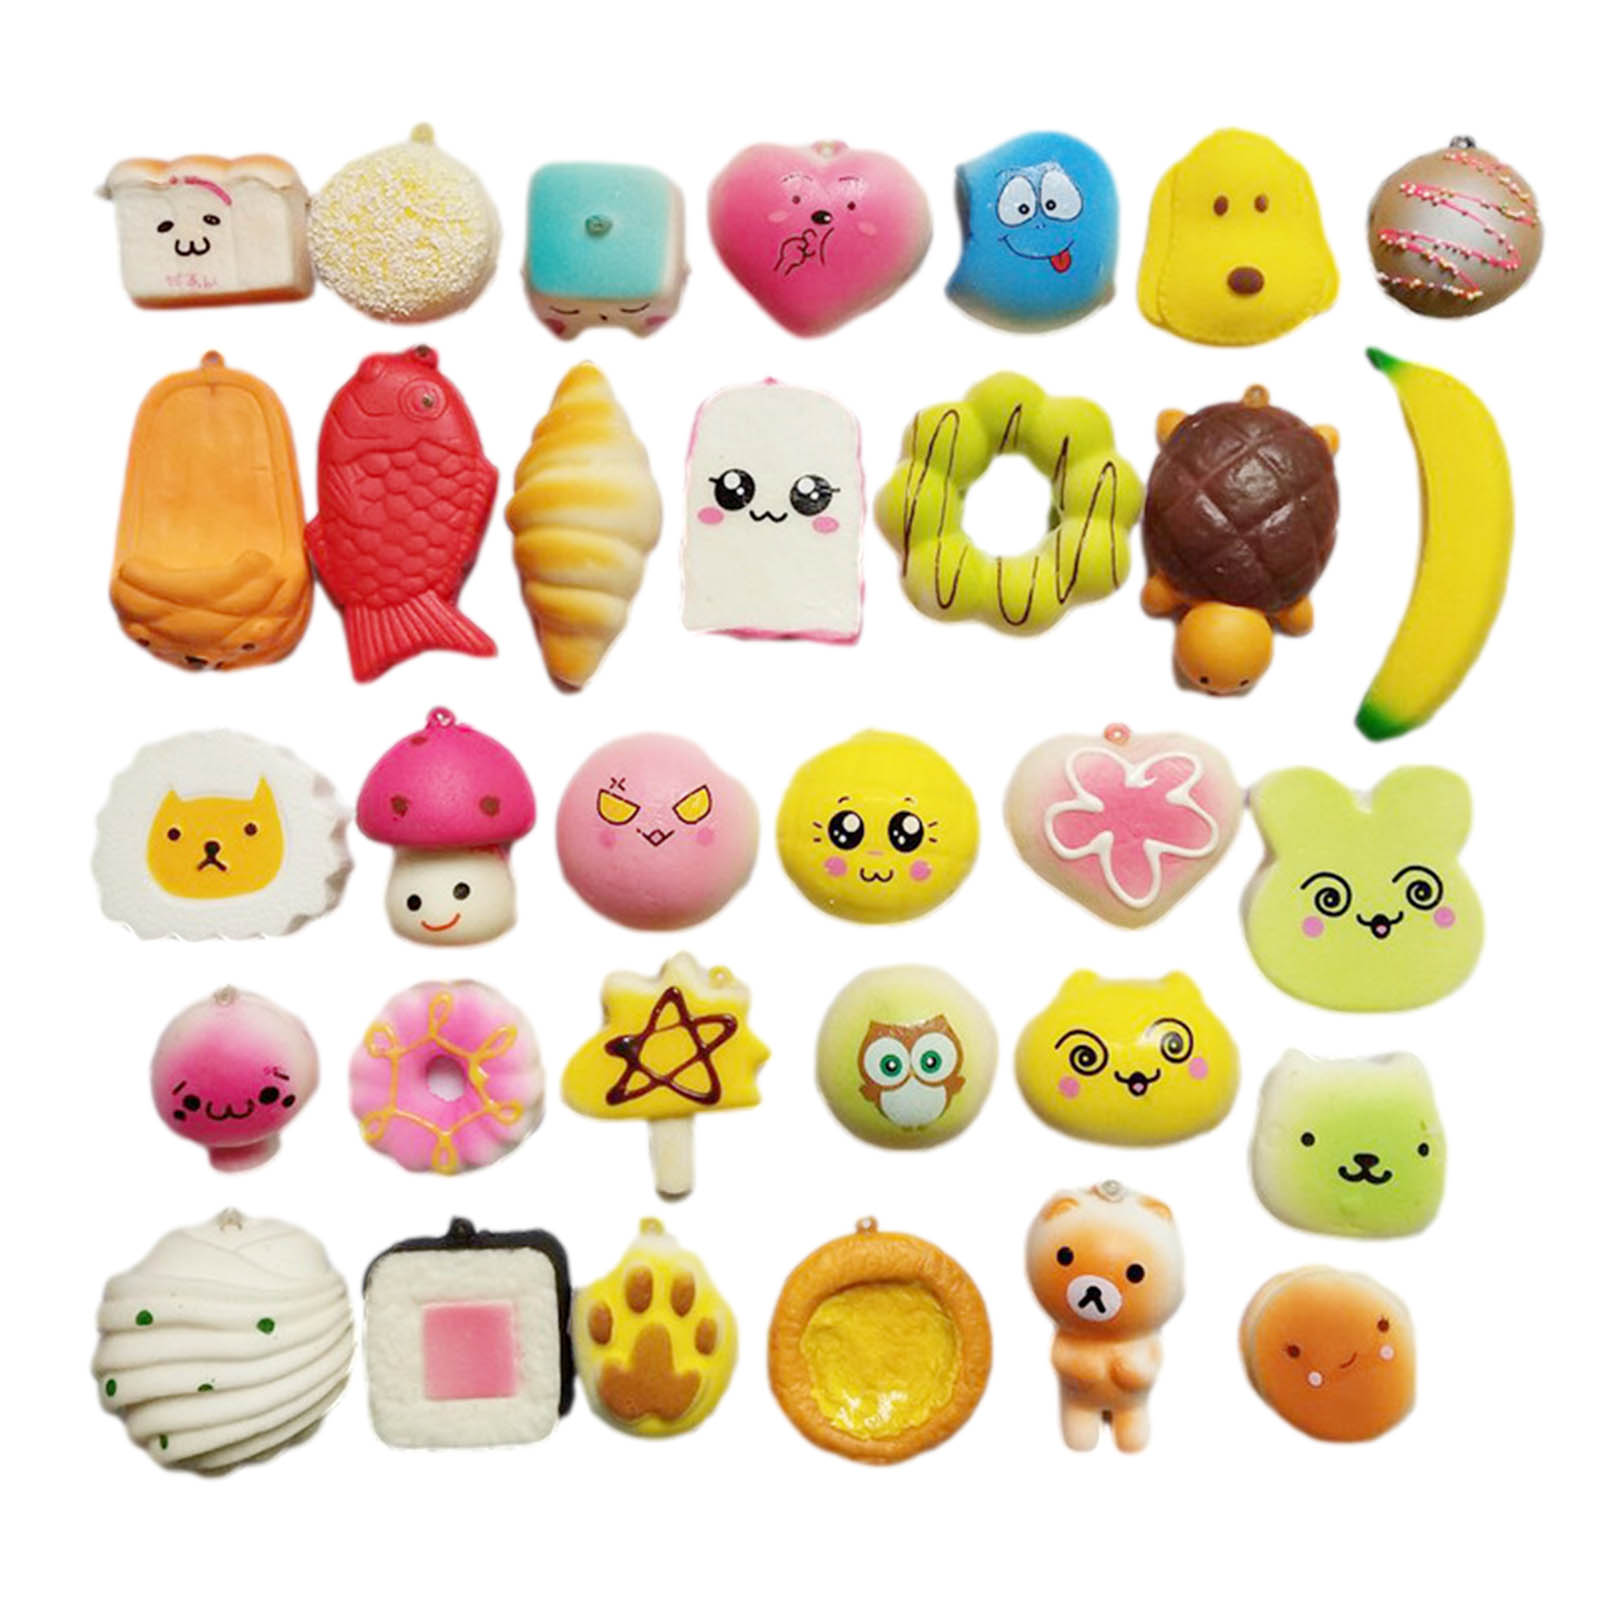 Stress Relief Sensory Toy Set Relieves Stress Anxiety Fidget Toys Decompressive Sensory Toy Set For Kid Adult Gift